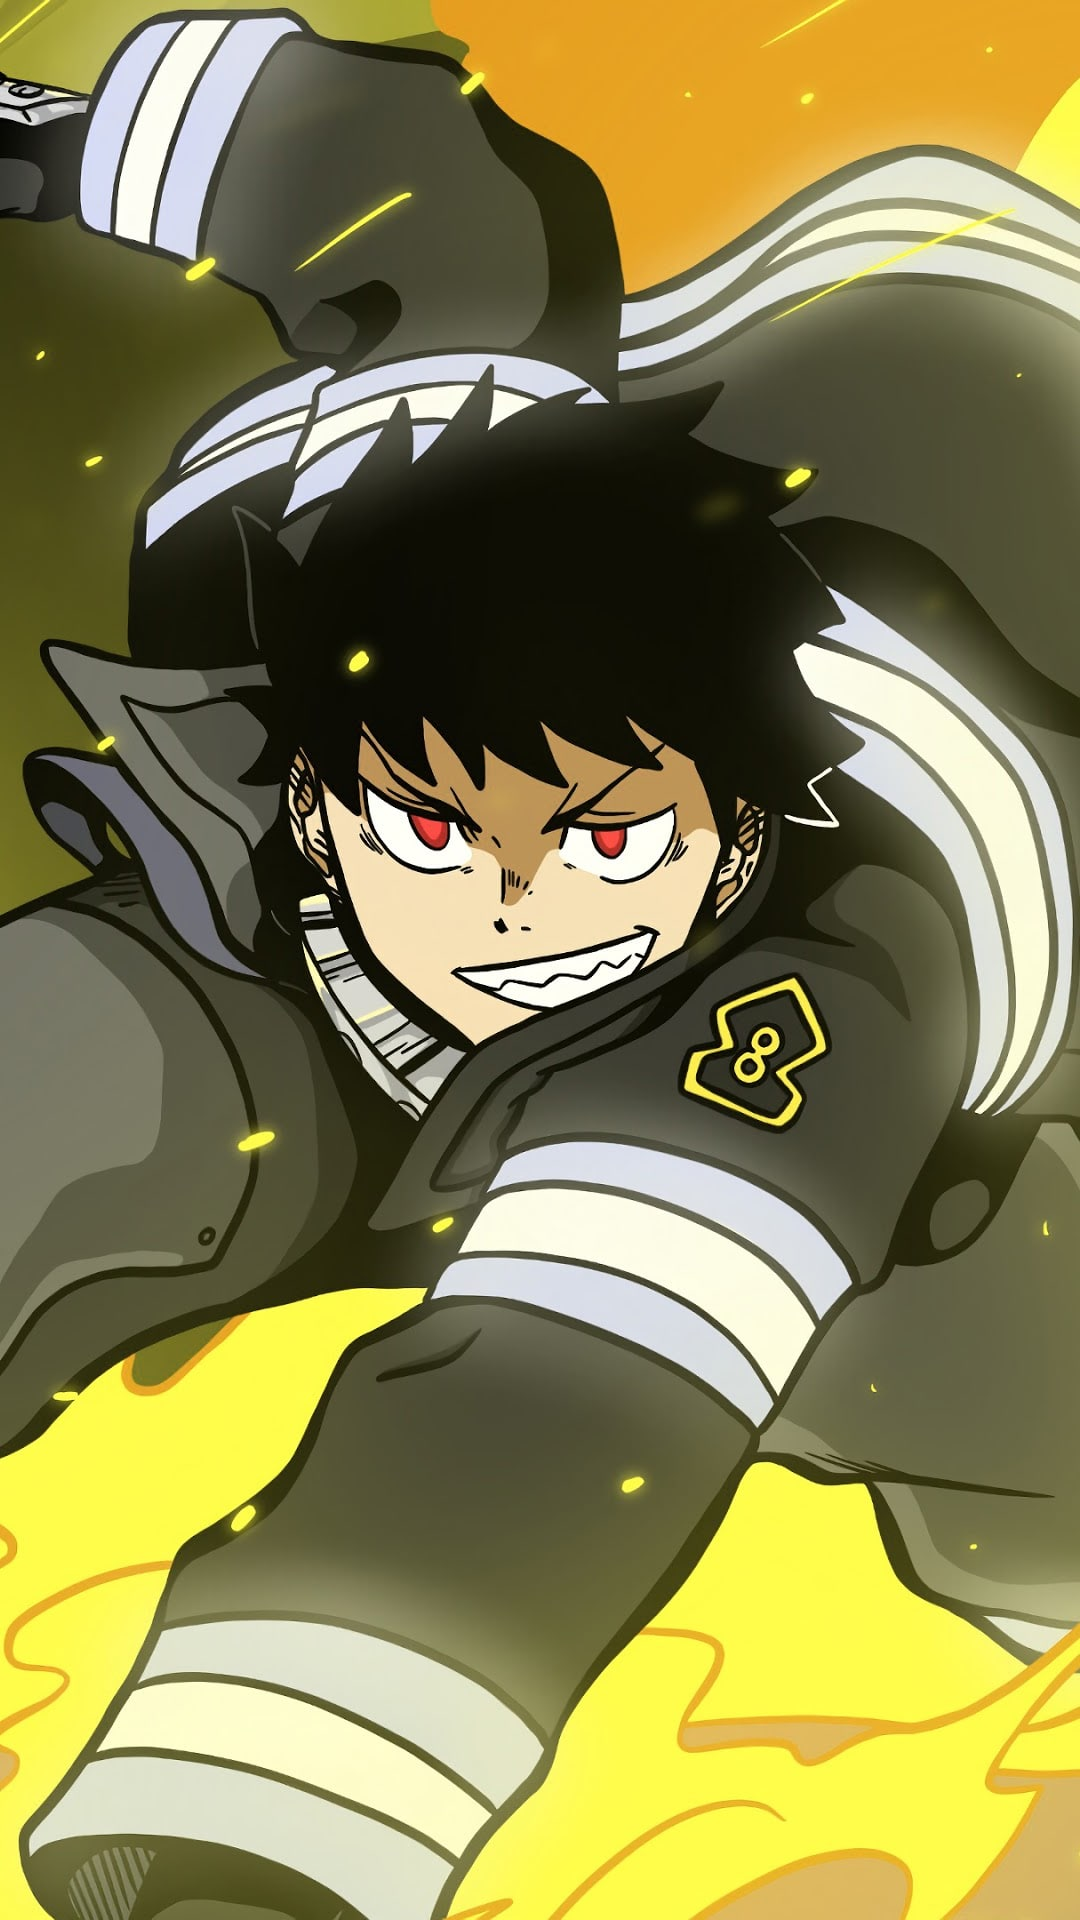 Iphone Fire Force Wallpapers - KoLPaPer - Awesome Free HD ...